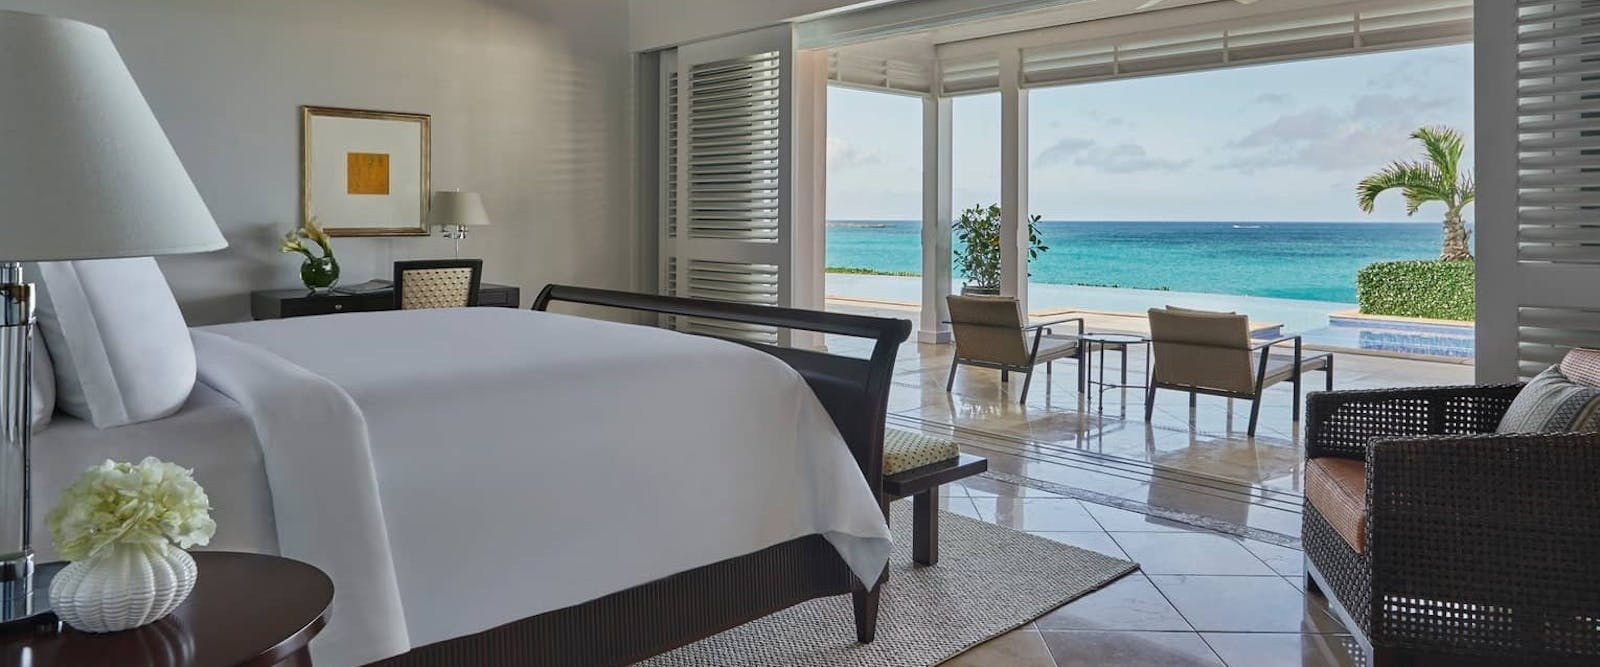 Hibiscus Four Bedroom Villa Residence at Ocean Club, Bahamas, Caribbean